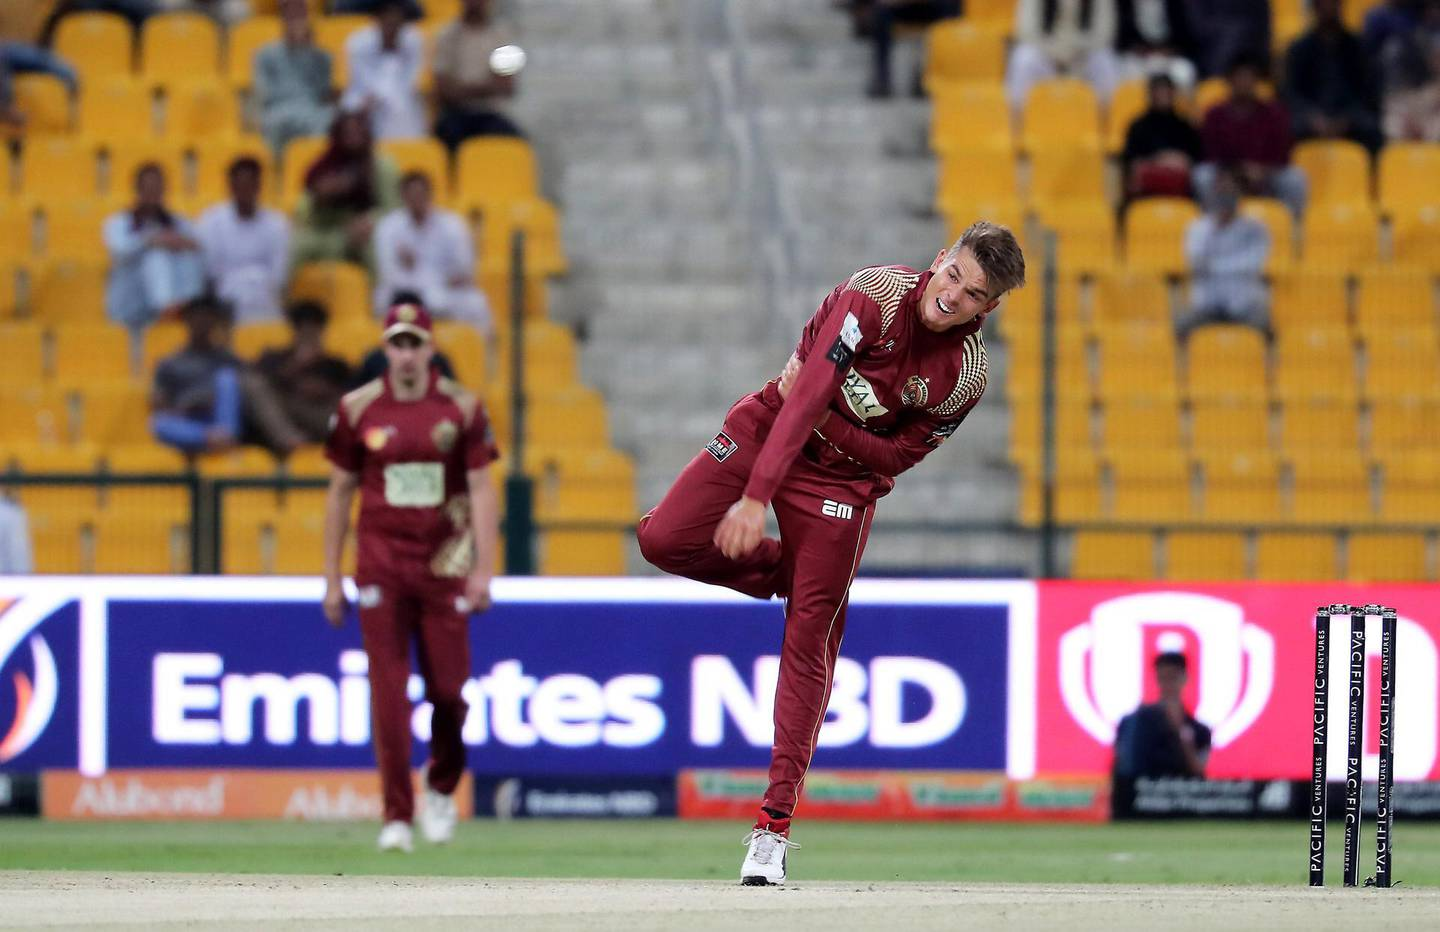 ABU DHABI , UNITED ARAB EMIRATES , Nov 19 – 2019 :- Chris Green of Northern Warriors bowling during the Abu Dhabi T10 Cricket match between Delhi Bulls vs Northern Warriors at Sheikh Zayed Cricket Stadium in Abu Dhabi. He took 3 wickets in this match. ( Pawan Singh / The National )  For Sports. Story by Paul